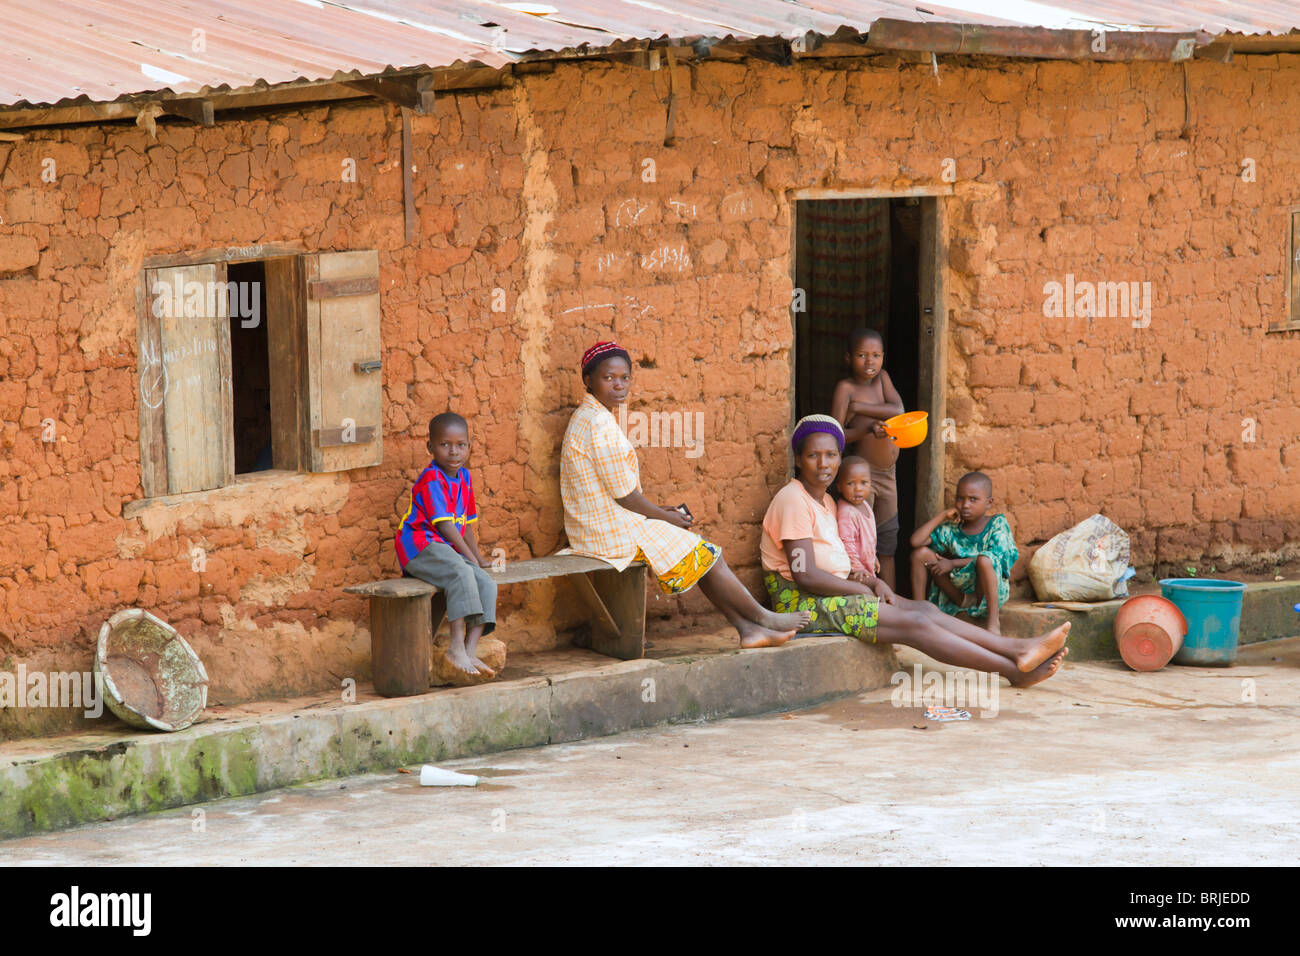 Peasons in a remote village of Ondo state, Nigeria. - Stock Image